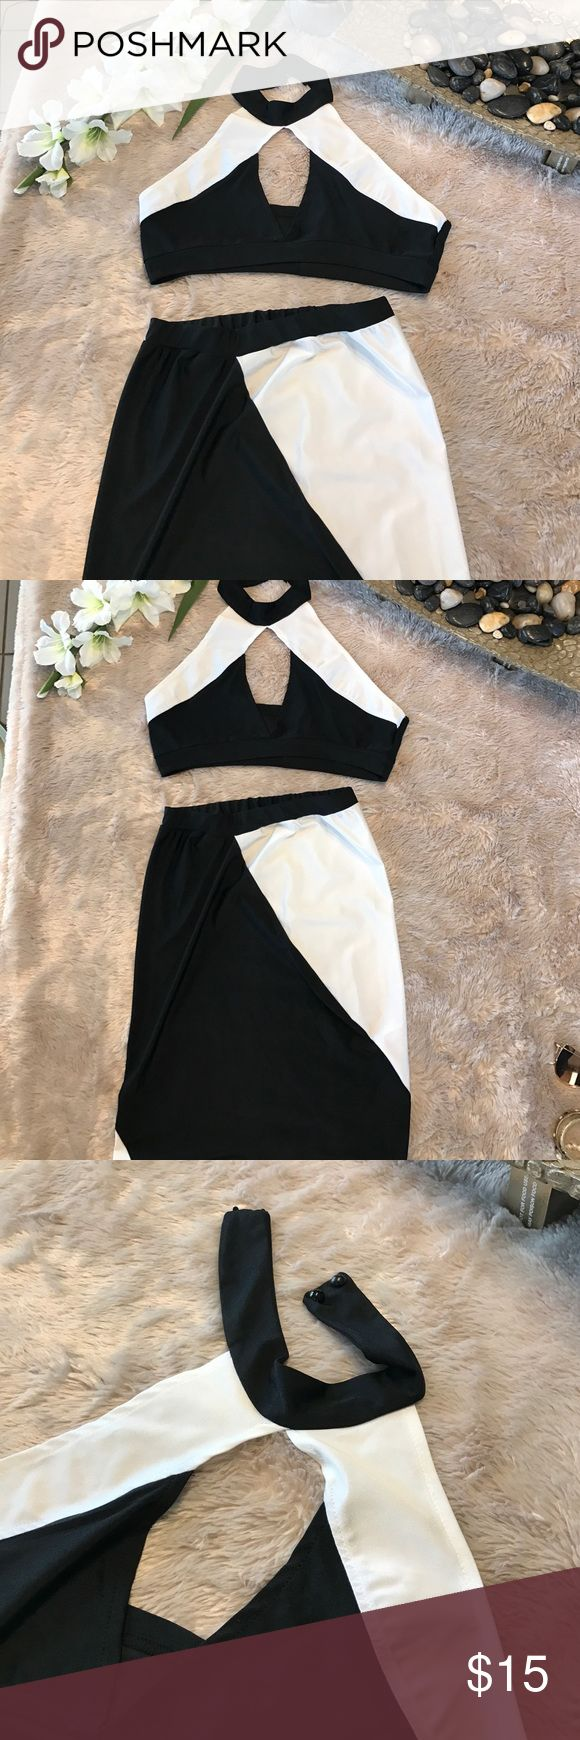 Black & White two piece bodycon dress Super cute two piece unit that can be worn together or separately. Never worn Dresses Midi